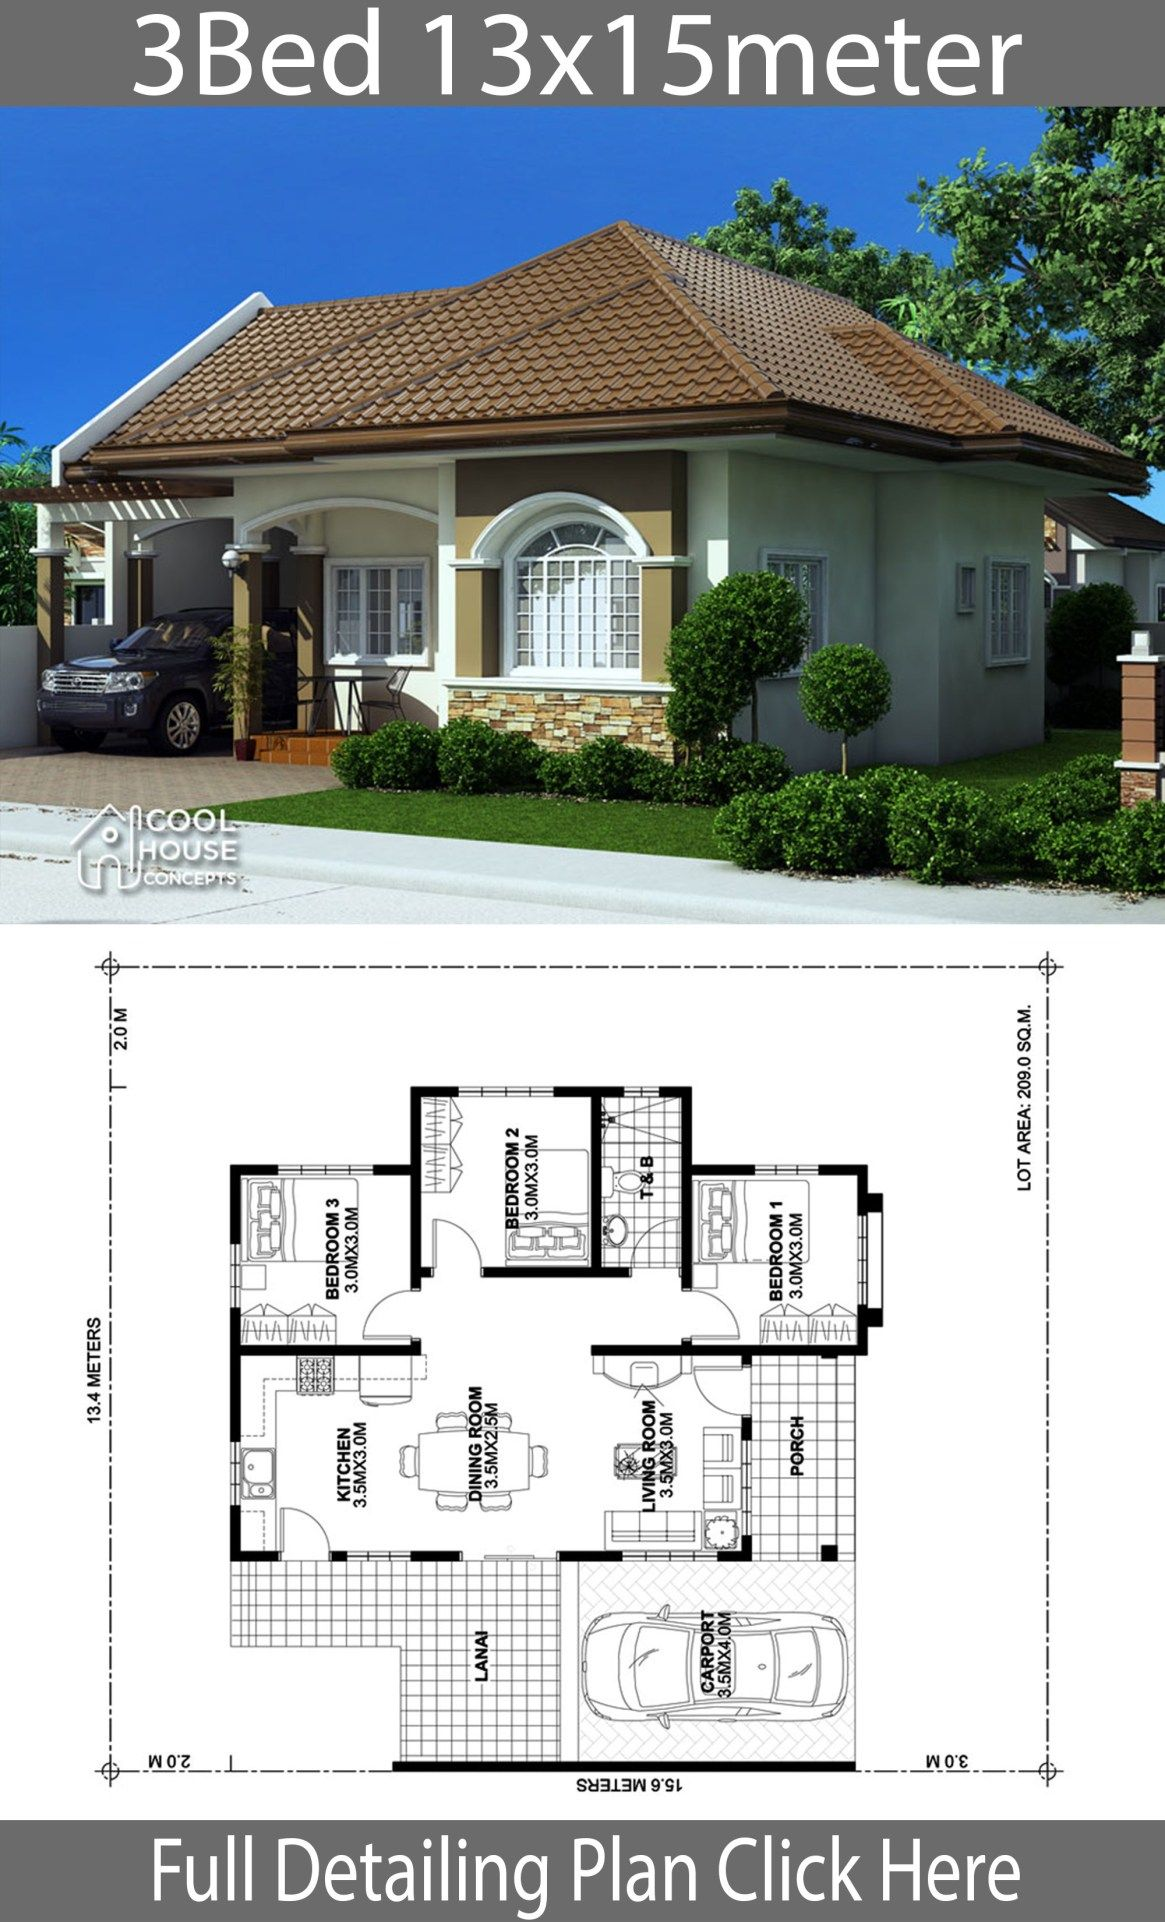 Home Design Plan 13x15m With 3 Bedrooms Home Design With Plansearch House Plan Gallery Home Building Design Philippines House Design